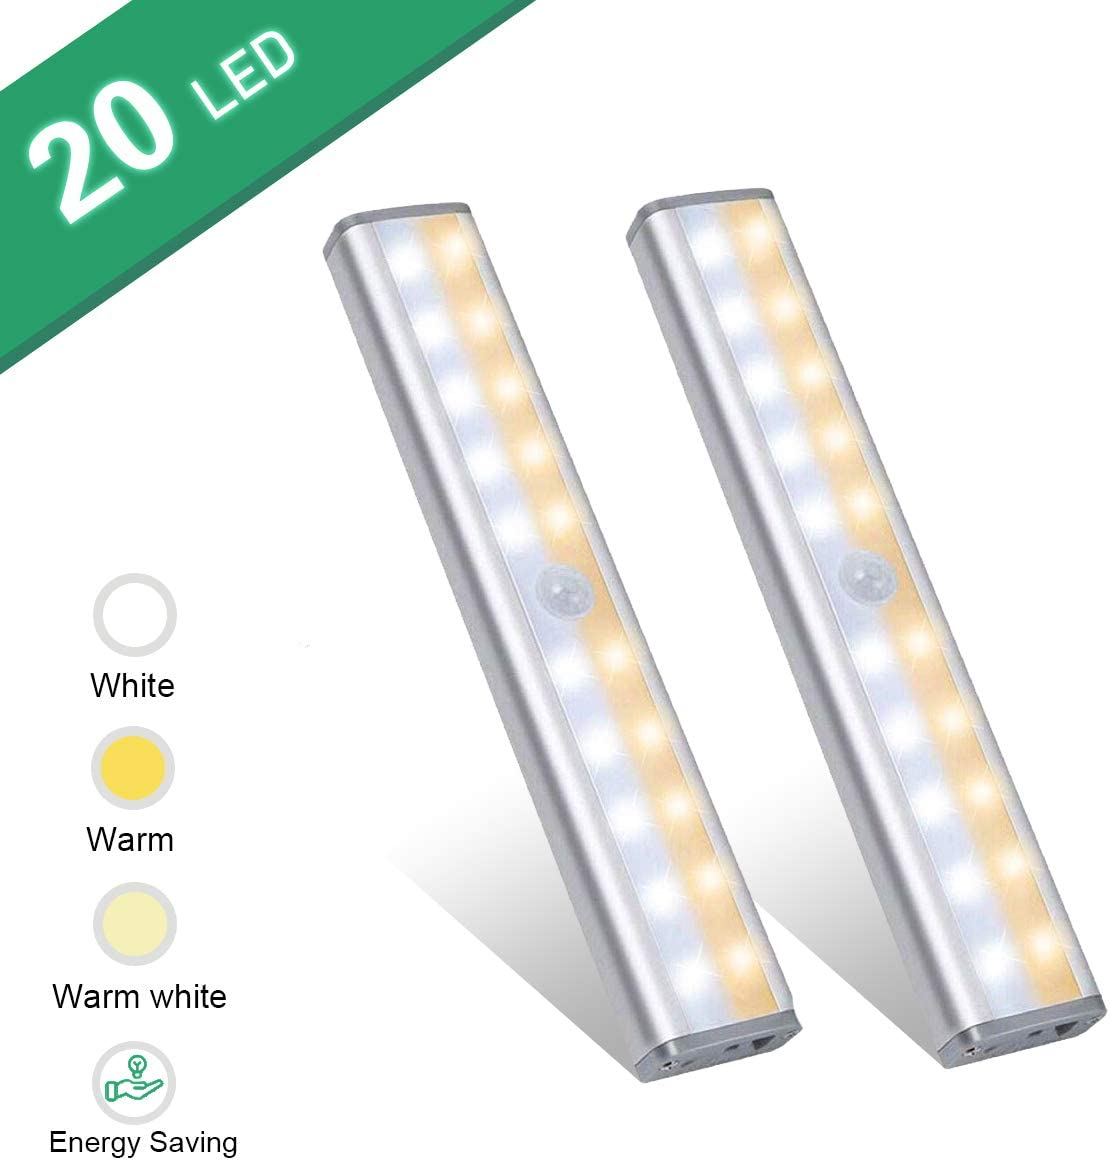 Under Cabinet Lighting,Vikano 20 LED Motion Sensor Closet Light Rechargeable,3 Color Mode Wireless Battery Operated Lights Bar for Kitchen Stair Hallway Under Counter Lighting Stick on Lights 2 Pack